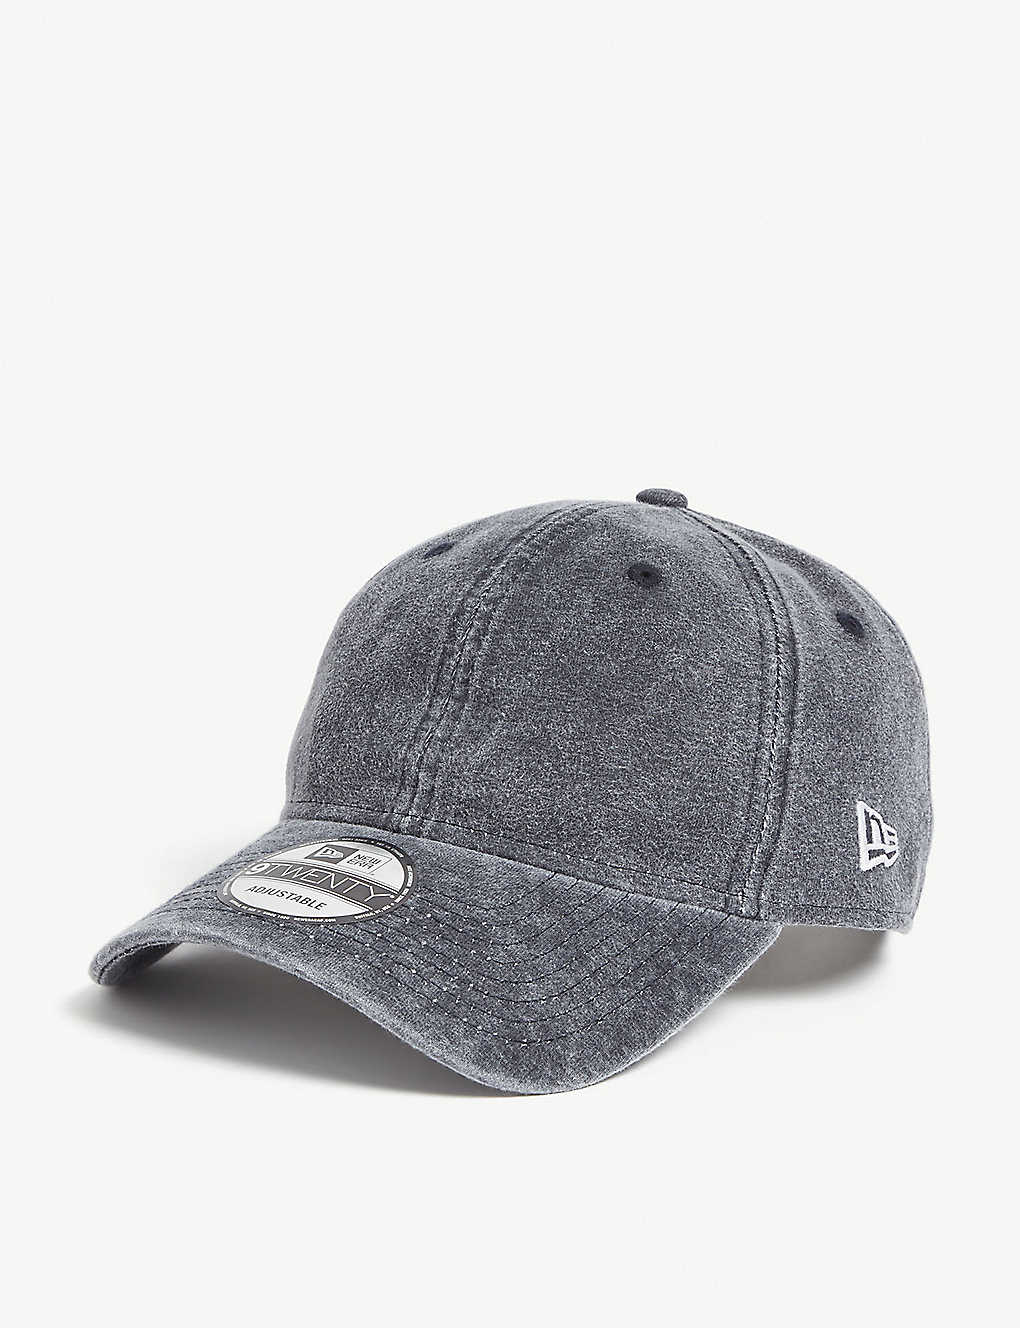 best service 4bc5a 246da NEW ERA Finest 9twenty washed denim cap